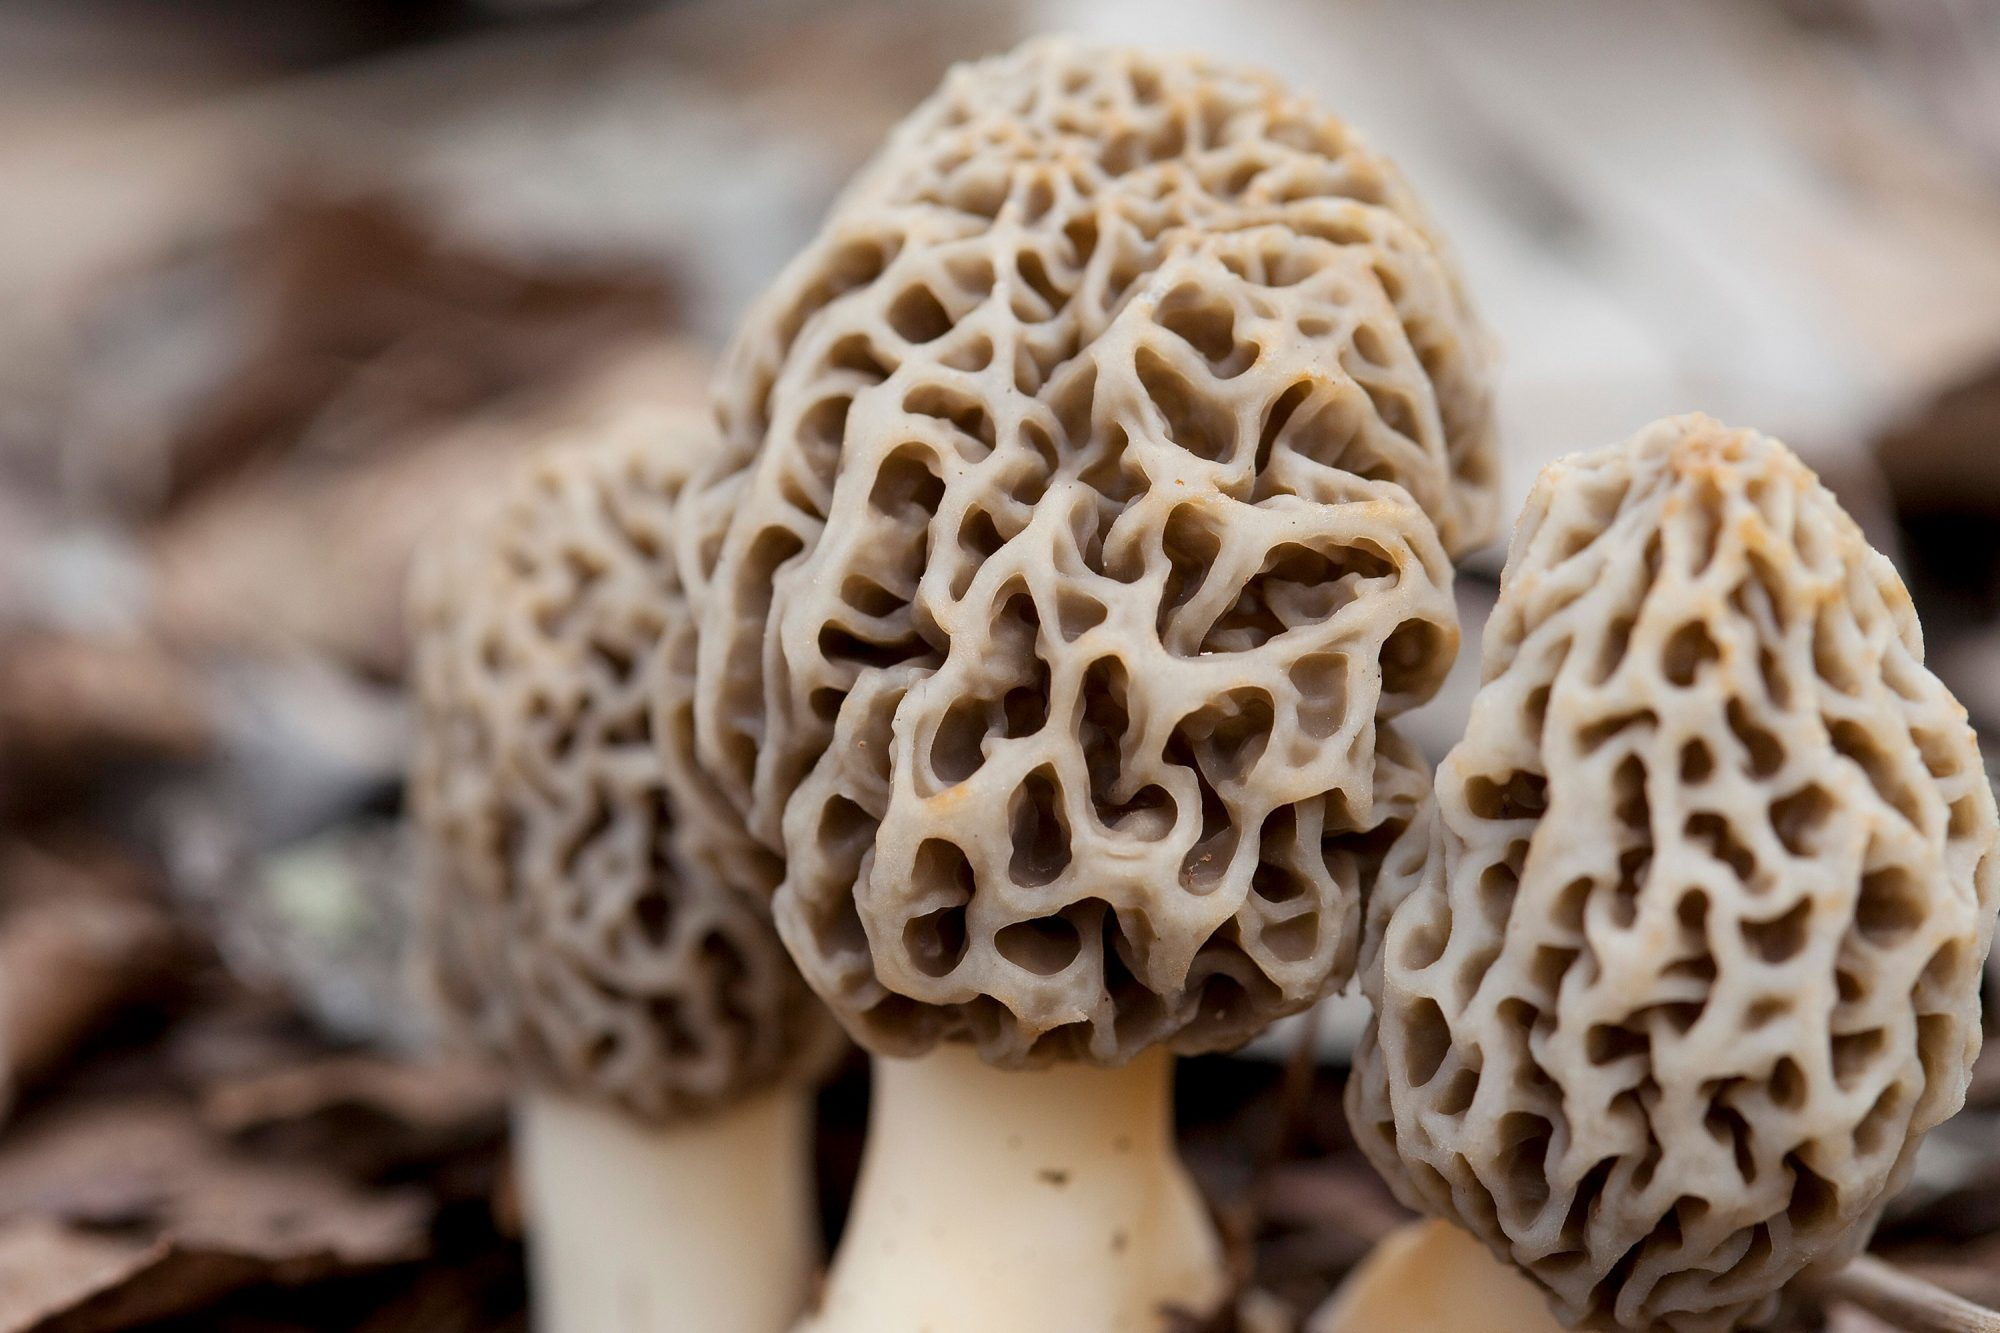 Morel mushrooms close-up shot